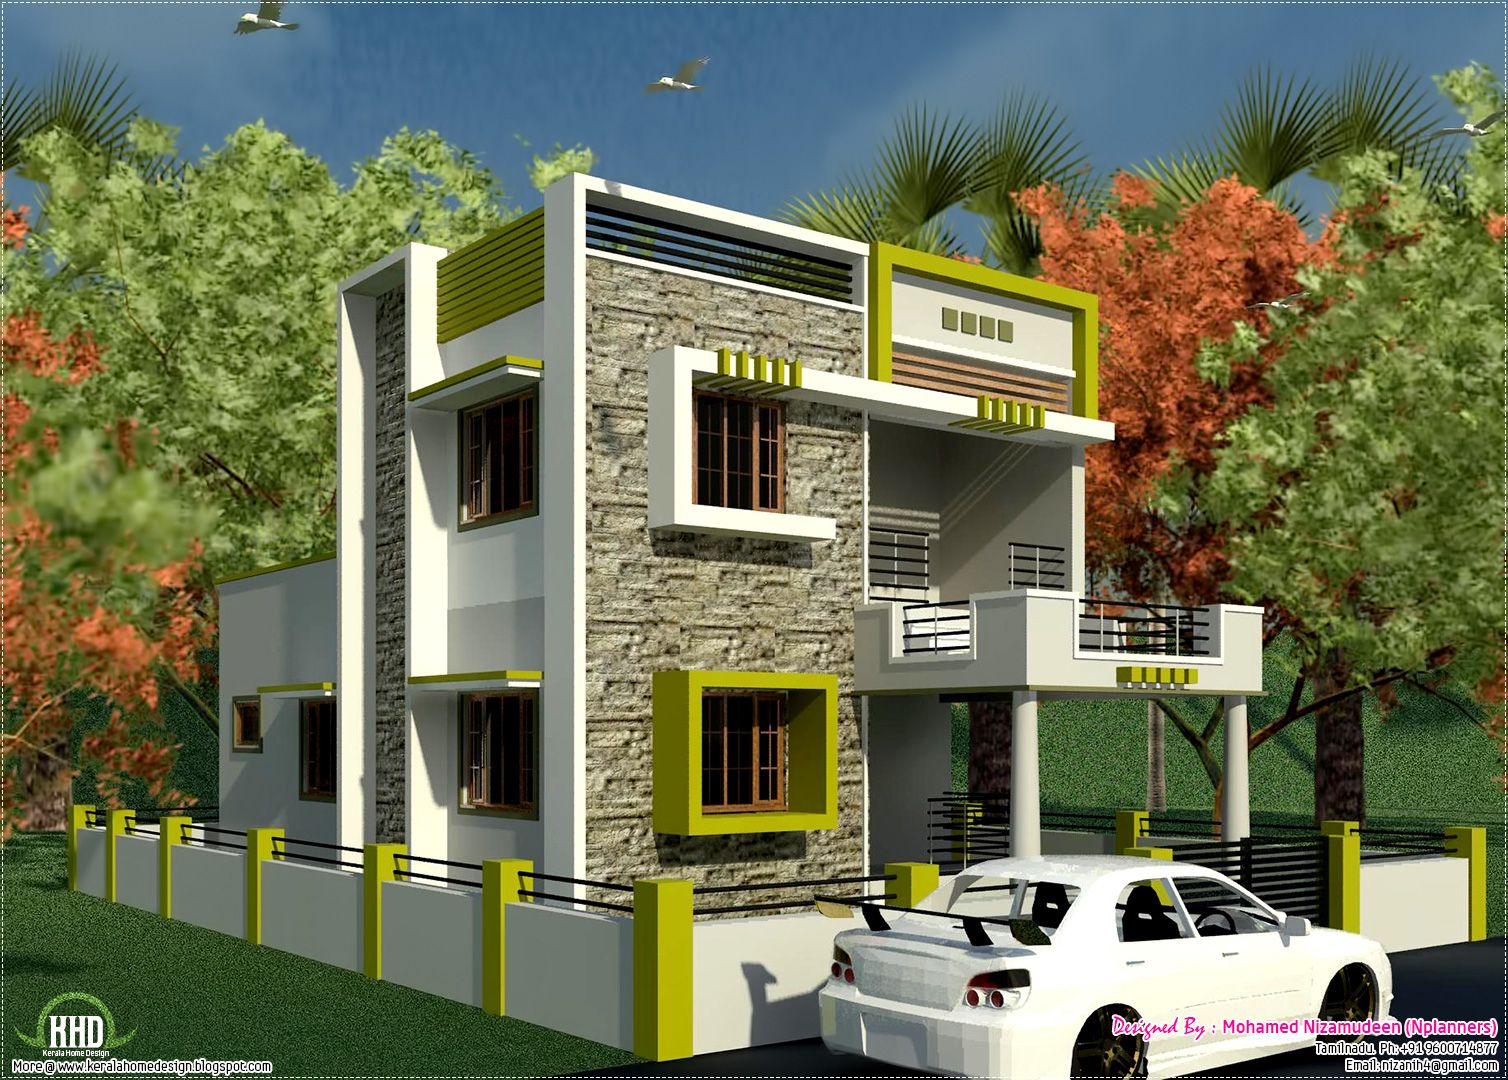 Small house with car park design tobfav com ideas for for Home exterior design india